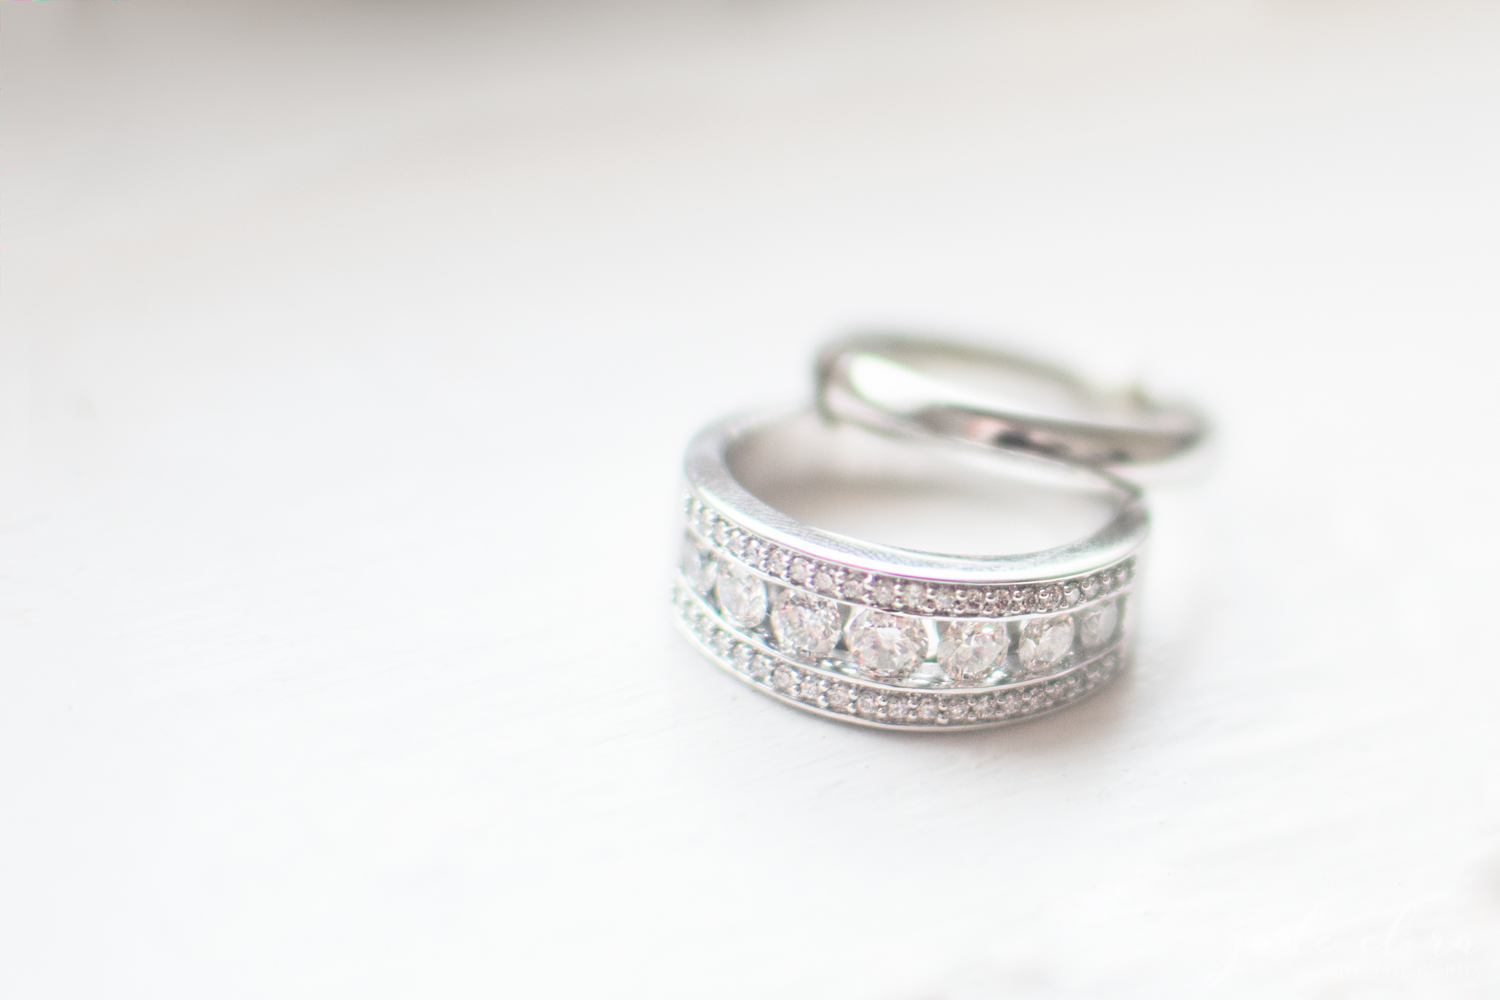 Two Womens' Wedding Bands - One Ornate and the Other Simple